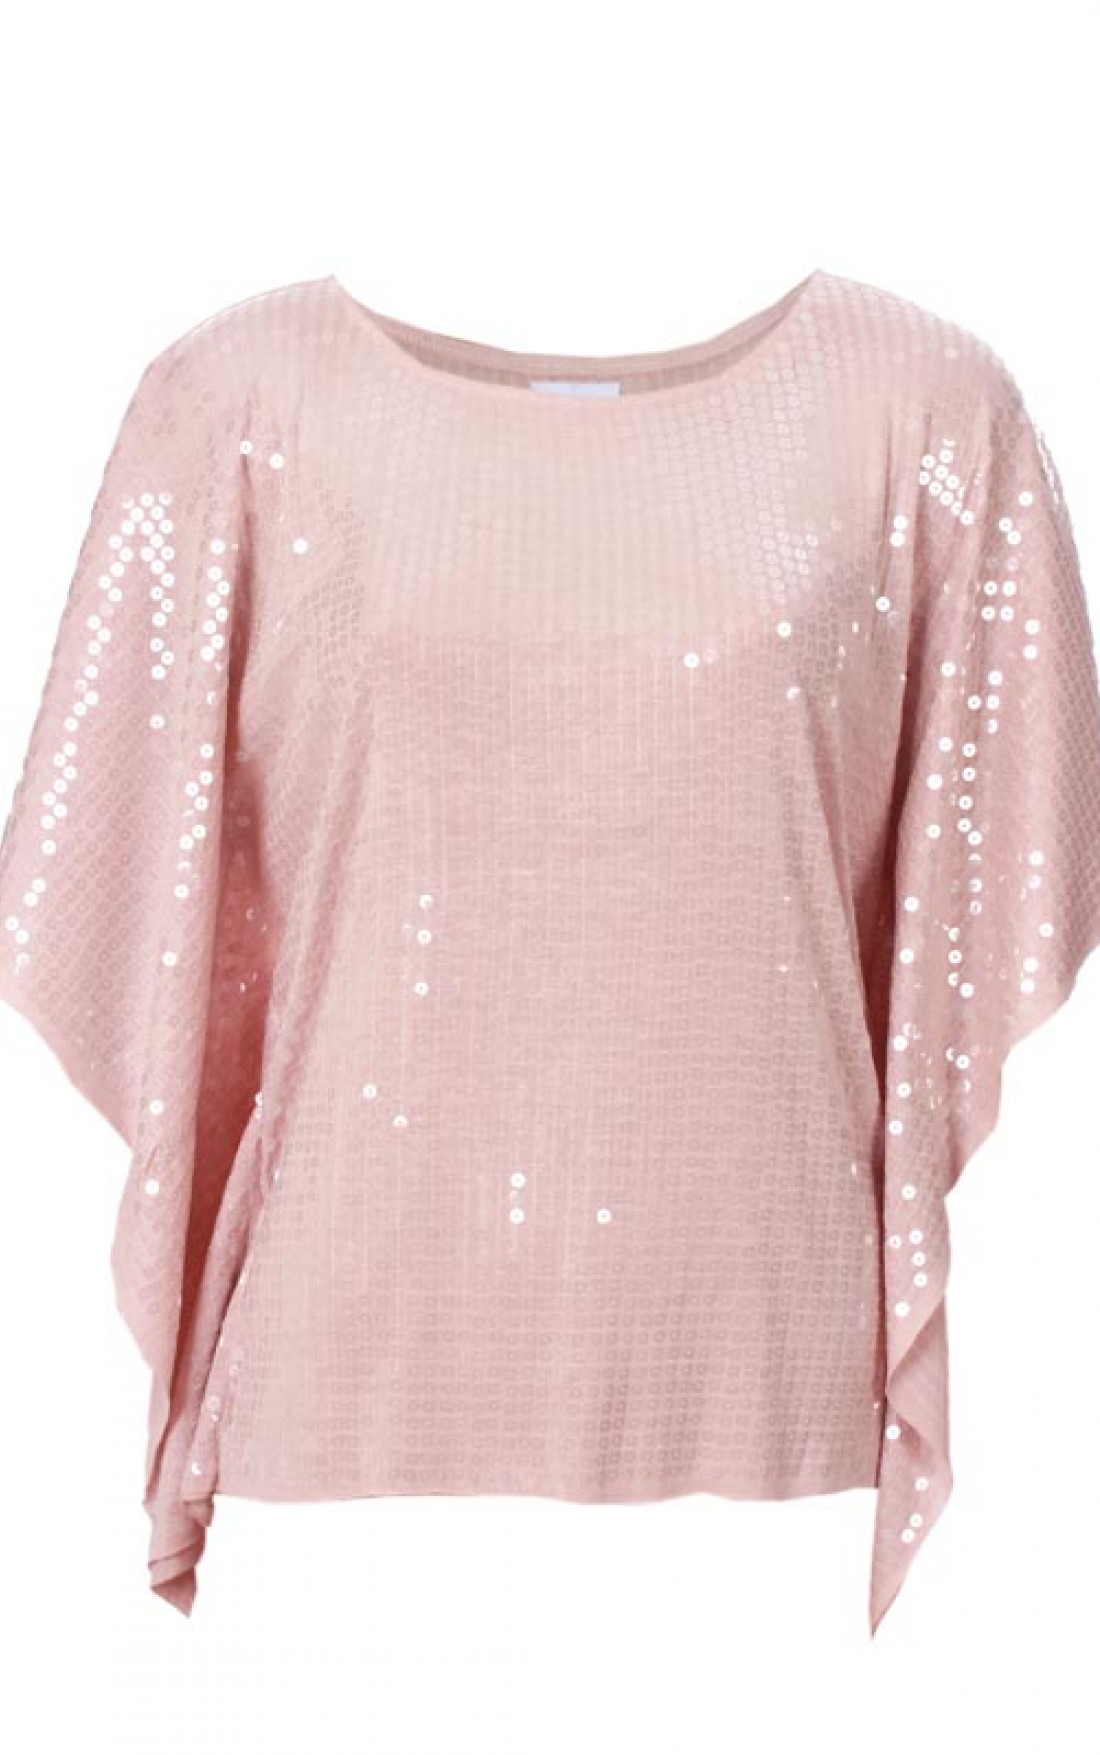 7b14875aacc170 Forever-Unique-Sequin-Top-Dawn-Pink-Boudi-UK